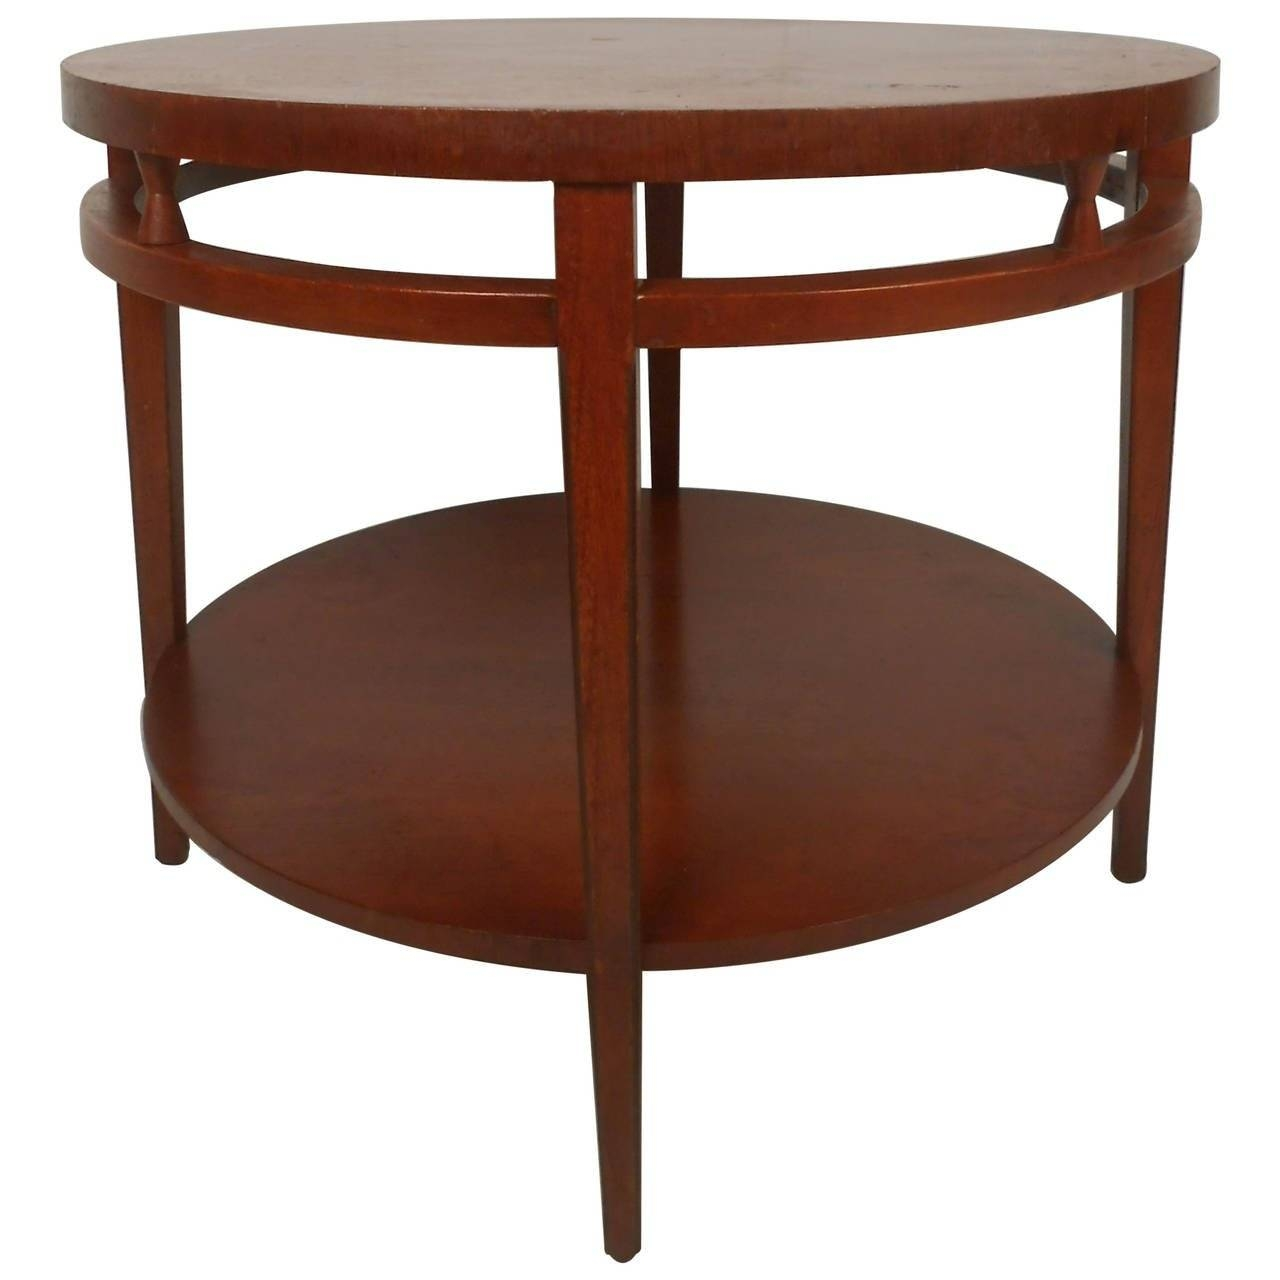 Midcentury Lane Style Two Tier Round Coffee Table For Sale At 1Stdibs With Regard To Circular Coffee Tables (View 26 of 30)